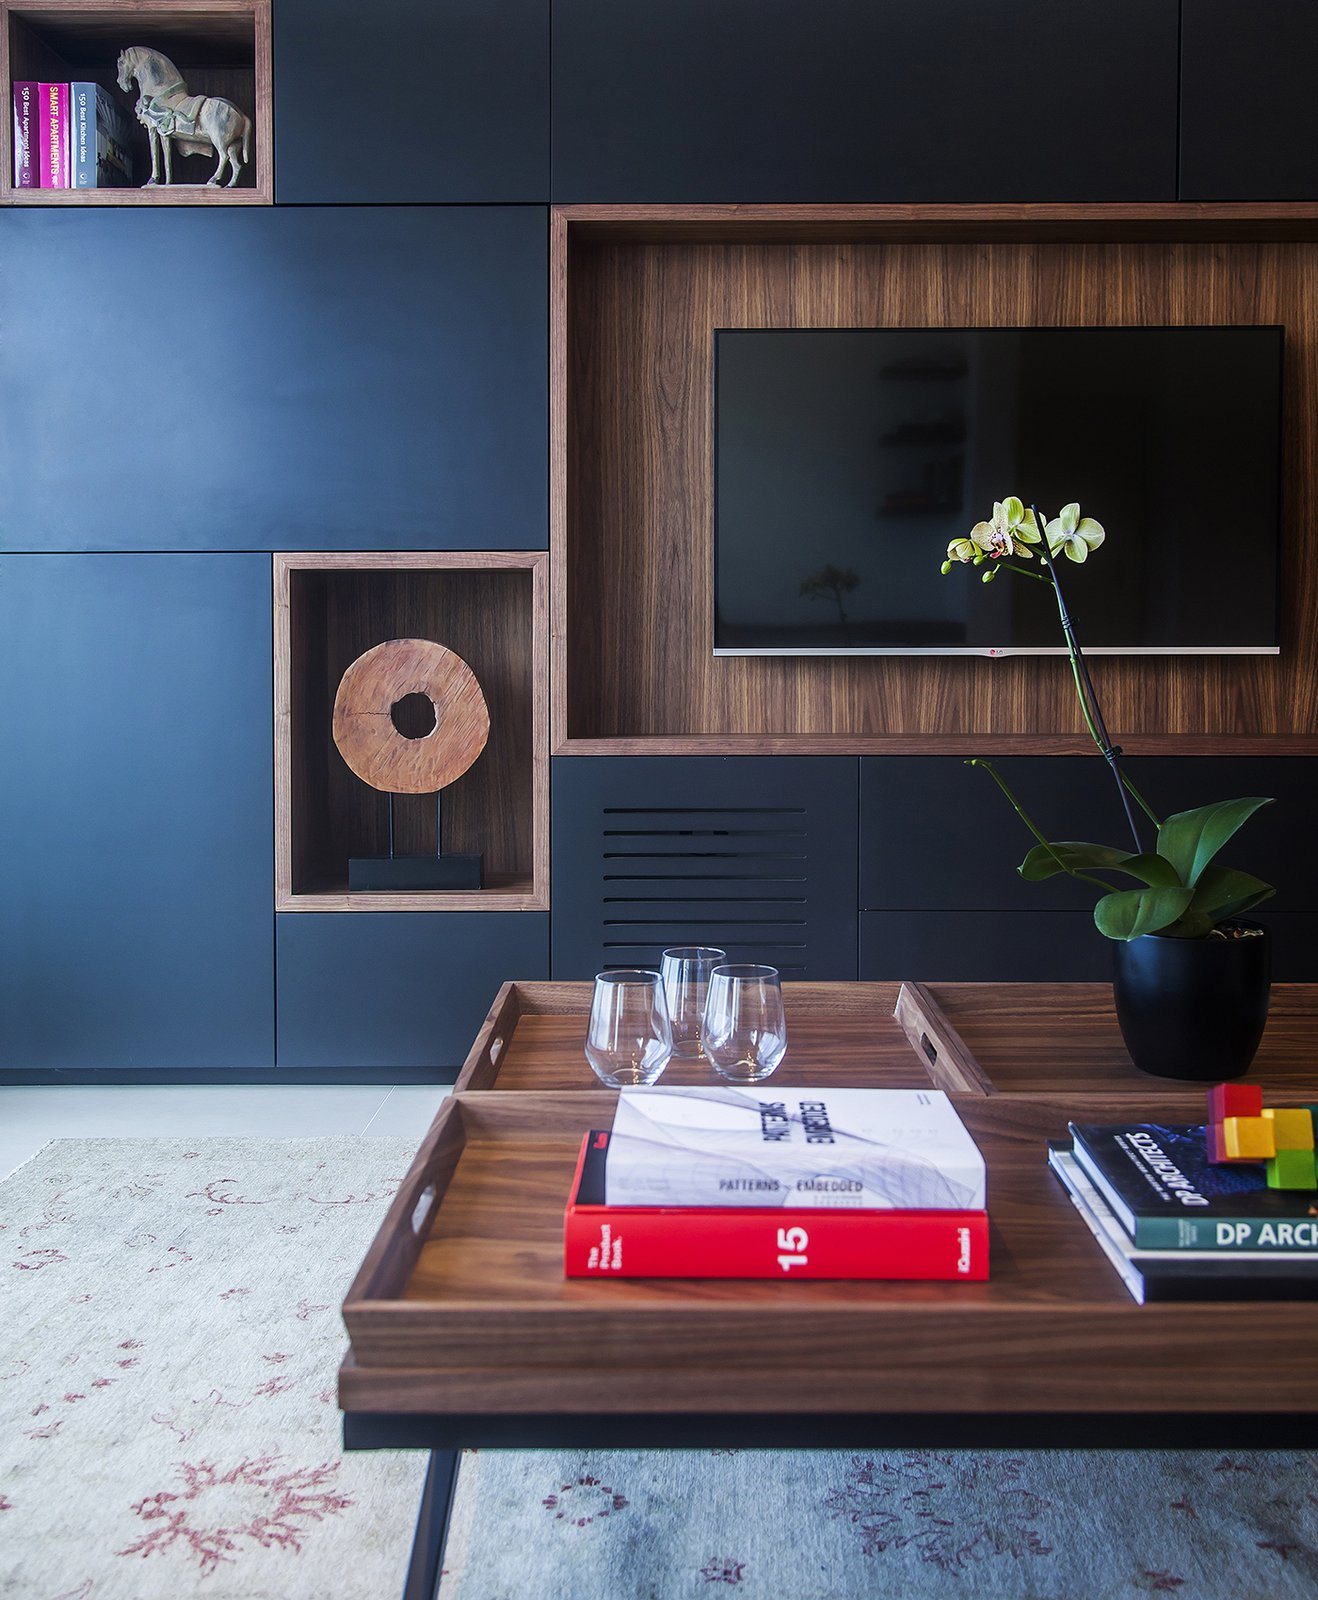 A custom media unit with hickory detailing features built-in shelves for displaying objects.  A Compact, Renovated Apartment in a Tel Aviv Tower by Allie Weiss